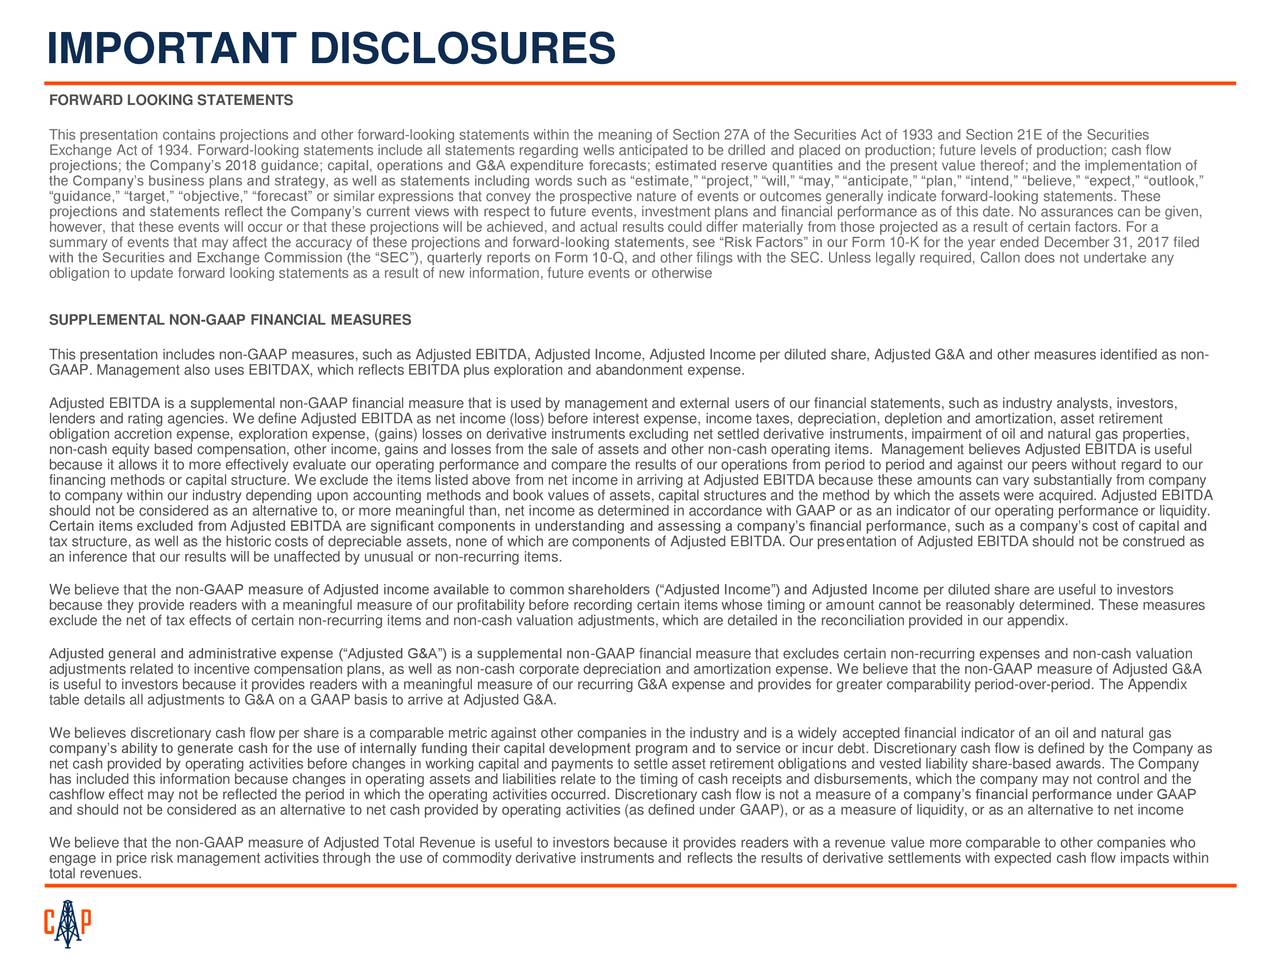 """FORWARD LOOKING STATEMENTS This presentation contains projections and other forward-looking statements within the meaning of Section 27A of the Securities Act of 1933 and Section 21E of the Securities Exchange Act of 1934. Forward-looking statements include all statements regarding wells anticipated to be drilled and placed on production; future levels of production; cash flow projections; the Company's 2018 guidance; capital, operations and G&A expenditure forecasts; estimated reserve quantities and the present value thereof; and the implementation of the Company's business plans and strategy, as well as statements including words such as """"estimate,"""" """"project,"""" """"will,"""" """"may,"""" """"anticipate,"""" """"plan,"""" """"intend,"""" """"believe,"""" """"expect,"""" """"outlook,"""" """"guidance,"""" """"target,"""" """"objective,"""" """"forecast"""" or similar expressions that convey the prospective nature of events or outcomes generally indicate forward-looking statements. These projections and statements reflect the Company's current views with respect to future events, investment plans and financial performance as of this date. No assurances can be given, however, that these events will occur or that these projections will be achieved, and actual results could differ materially from those projected as a result of certain factors. For a summary of events that may affect the accuracy of these projections and forward-looking statements, see """"Risk Factors"""" in our Form 10-K for the year ended December 31, 2017 filed with the Securities and Exchange Commission (the """"SEC""""), quarterly reports on Form 10-Q, and other filings with the SEC. Unless legally required, Callon does not undertake any obligation to update forward looking statements as a result of new information, future events or otherwise SUPPLEMENTAL NON-GAAP FINANCIAL MEASURES This presentation includes non-GAAP measures, such as Adjusted EBITDA, Adjusted Income, Adjusted Income per diluted share, Adjusted G&A and other measures identified as non- GAAP. Management also uses E"""